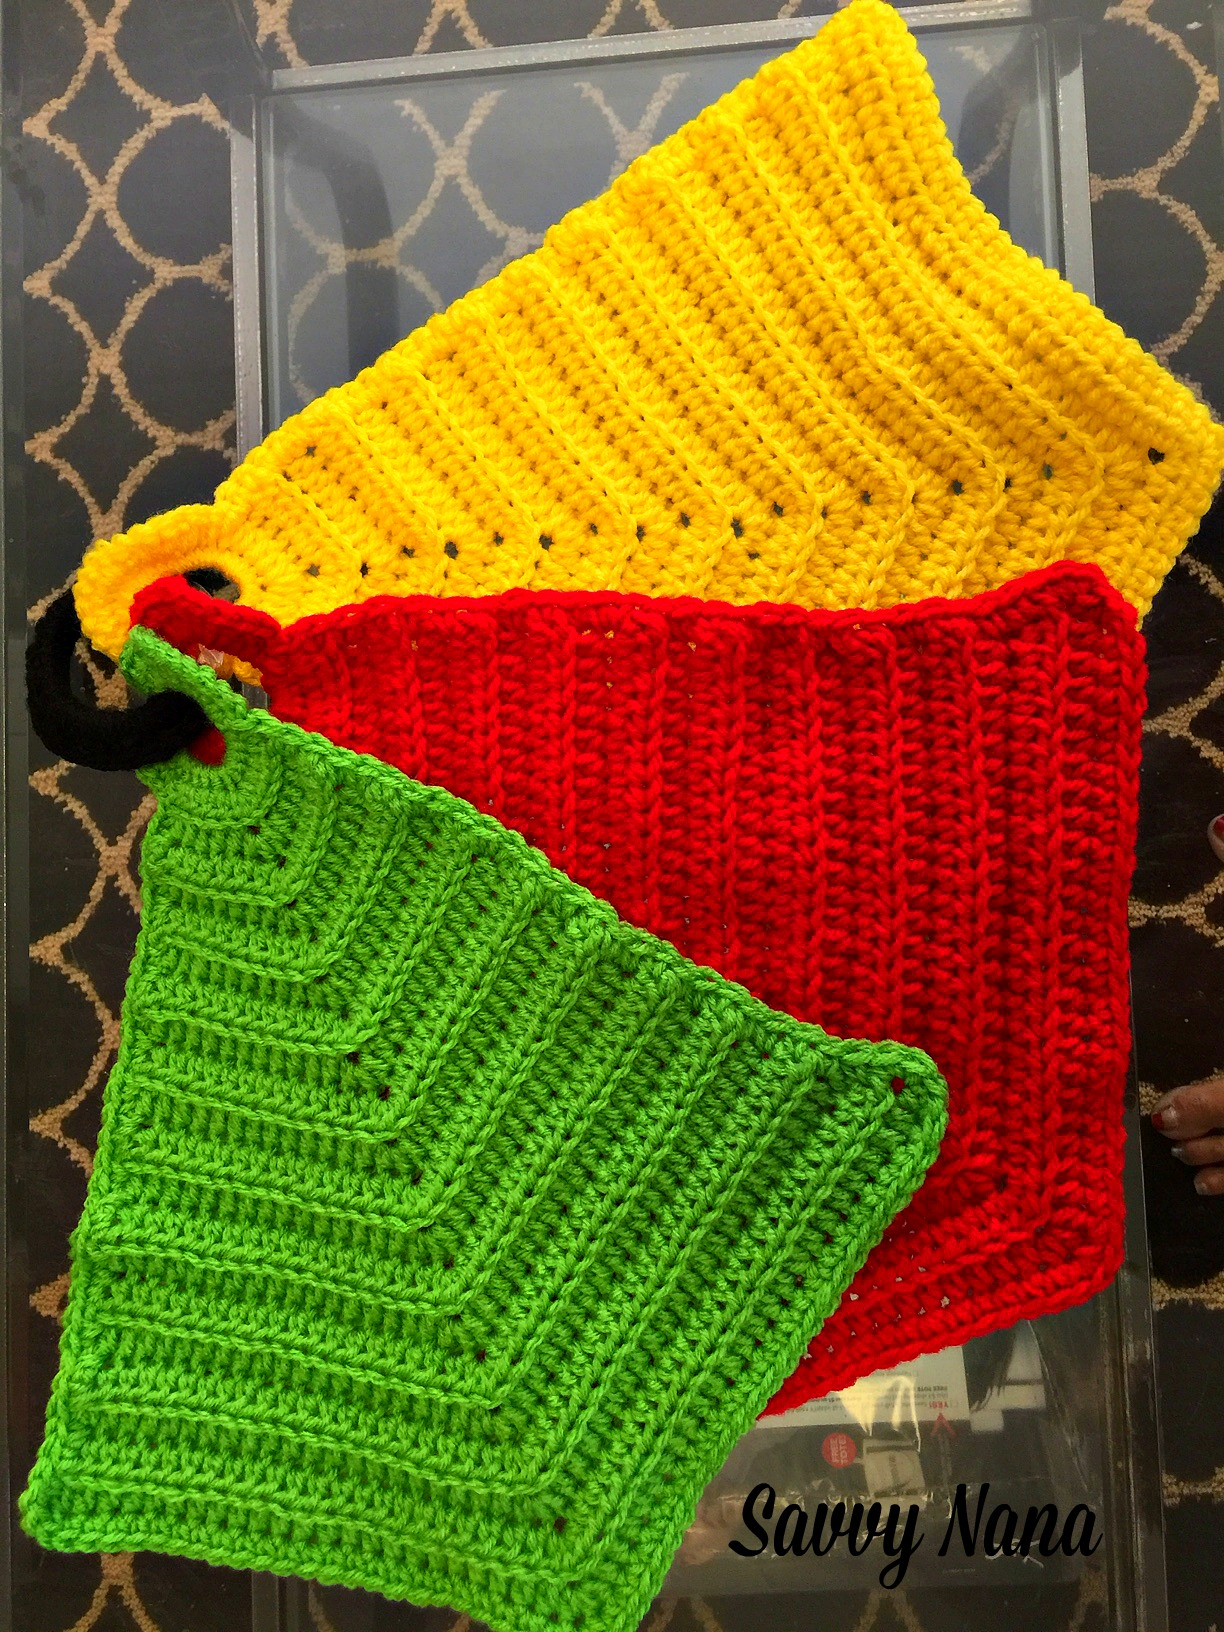 Crocheted Kitchen Hot Pads - FREE Crochet Pattern - Savvy Nana